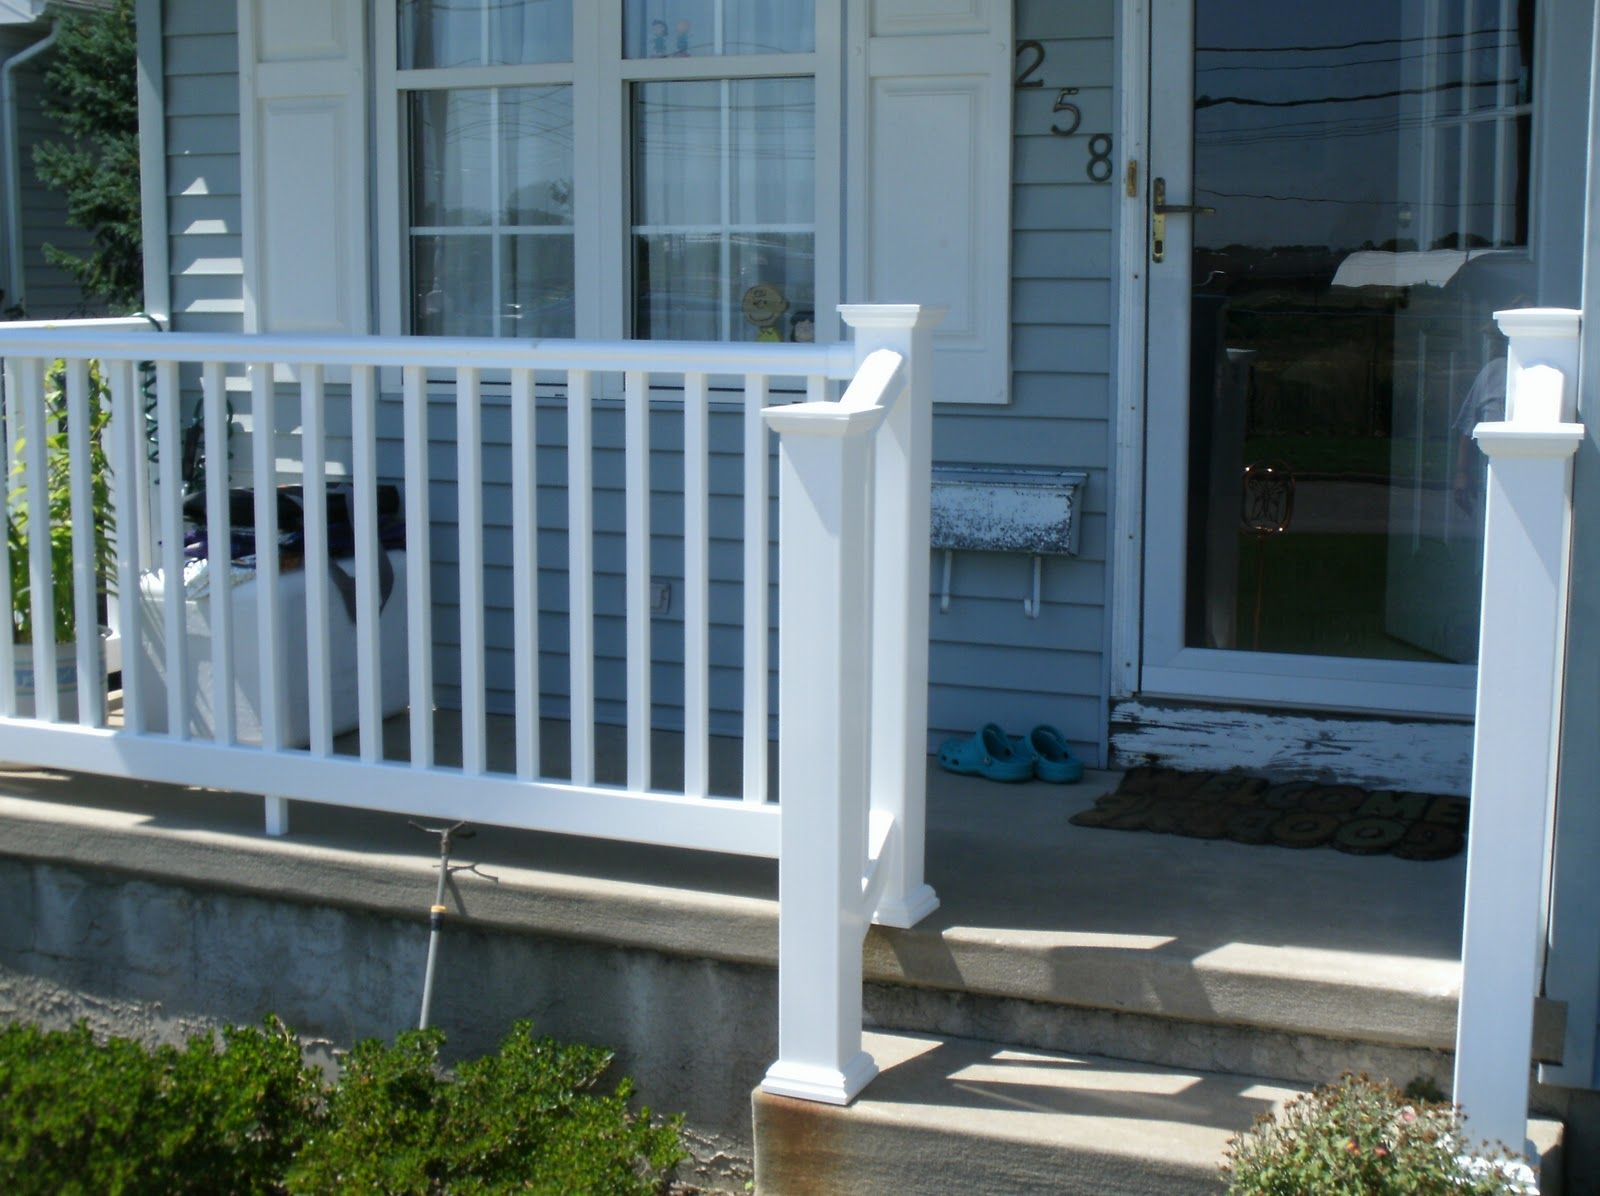 your railings distinct porch a front deck alloworigin touch vinyl style balcony with or railing of to fiberglass aluminum columns accesskeyid disposition add and